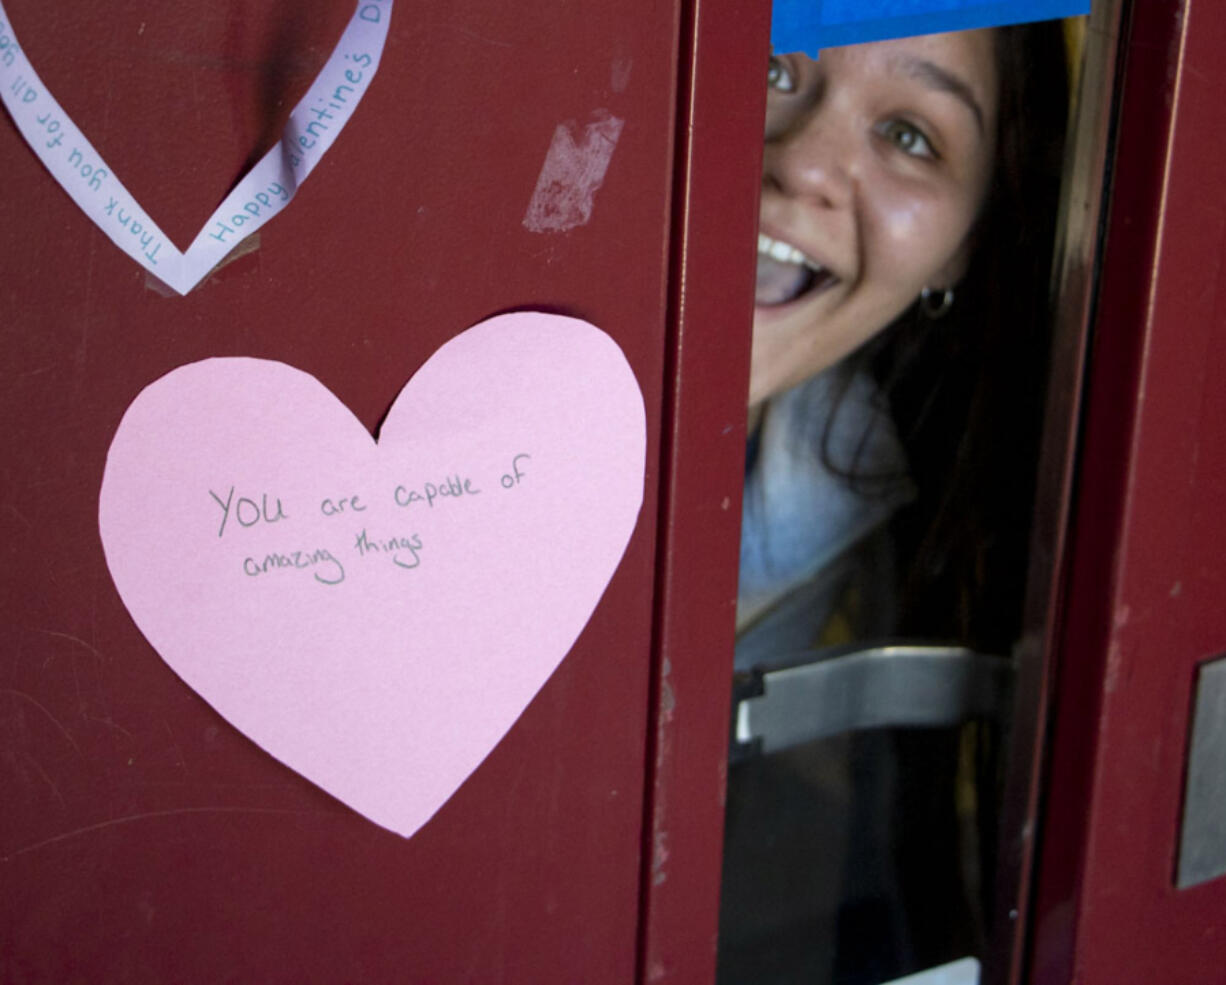 BATTLE GROUND: Prairie High School sophomore Soledad Ahumada peeks out from a door holding a heart with an inspirational message.